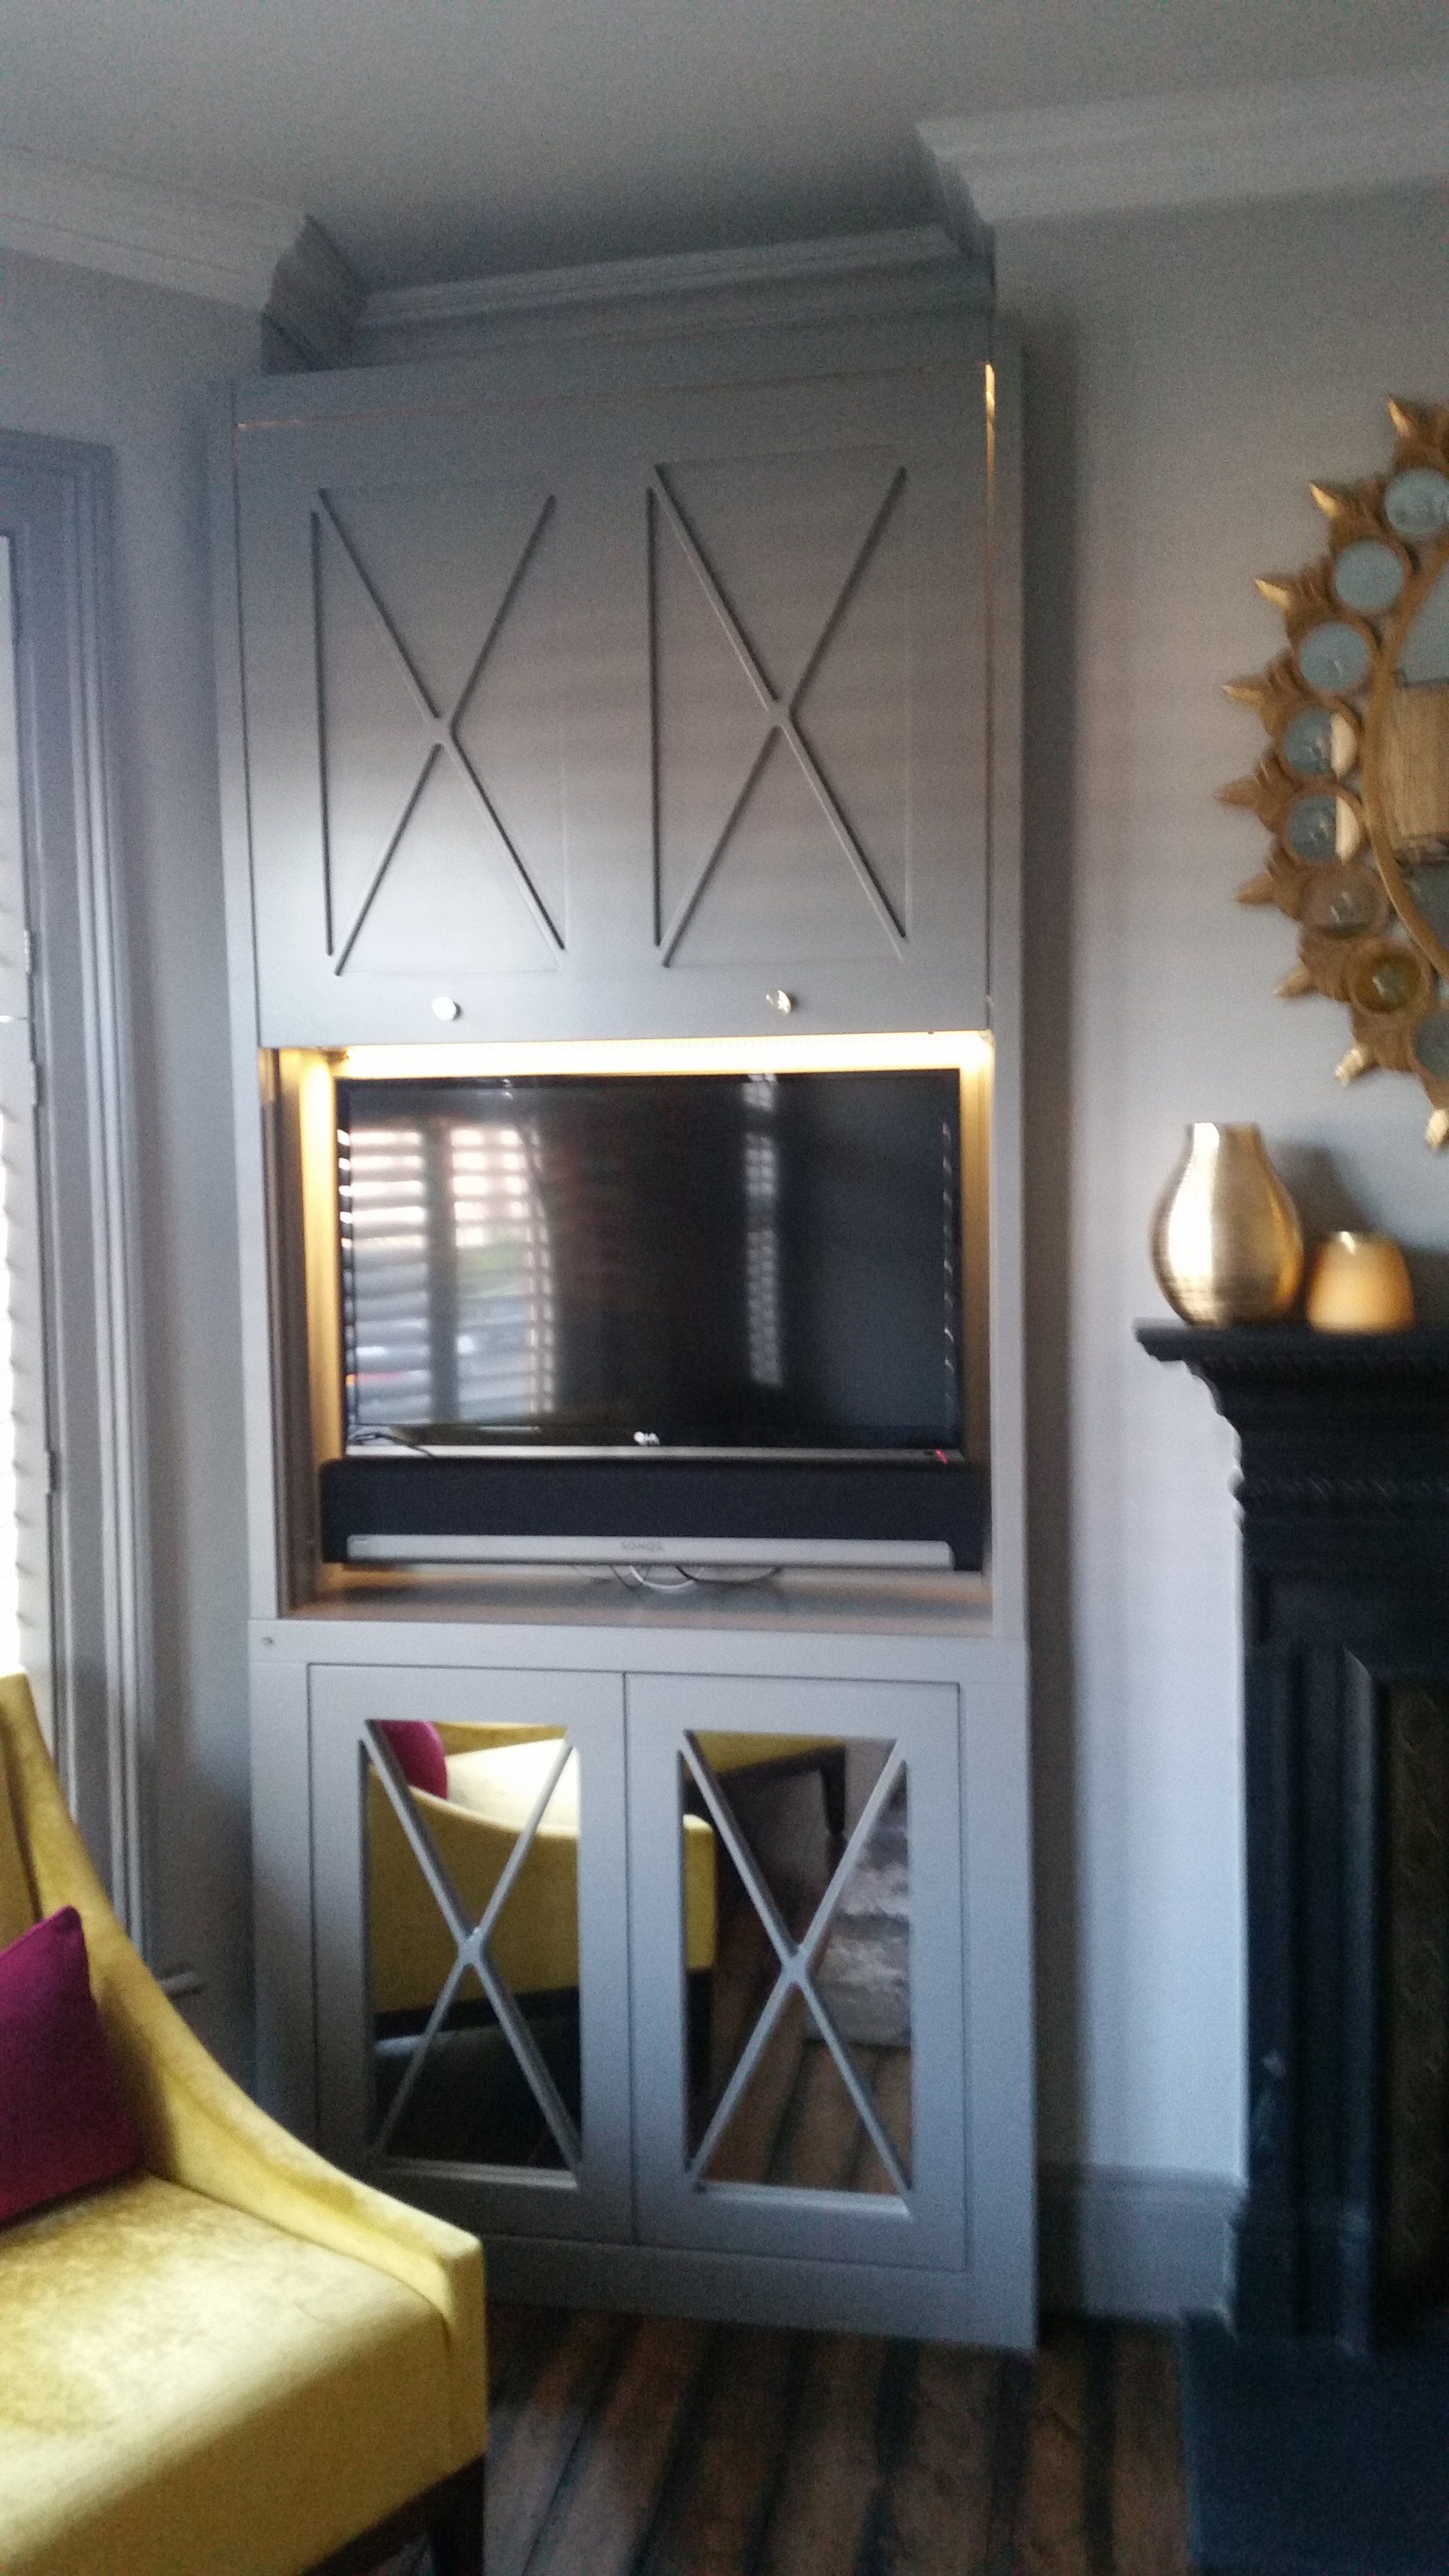 Interior design work services south london service victoria also pin by emma on interiors rh pinterest